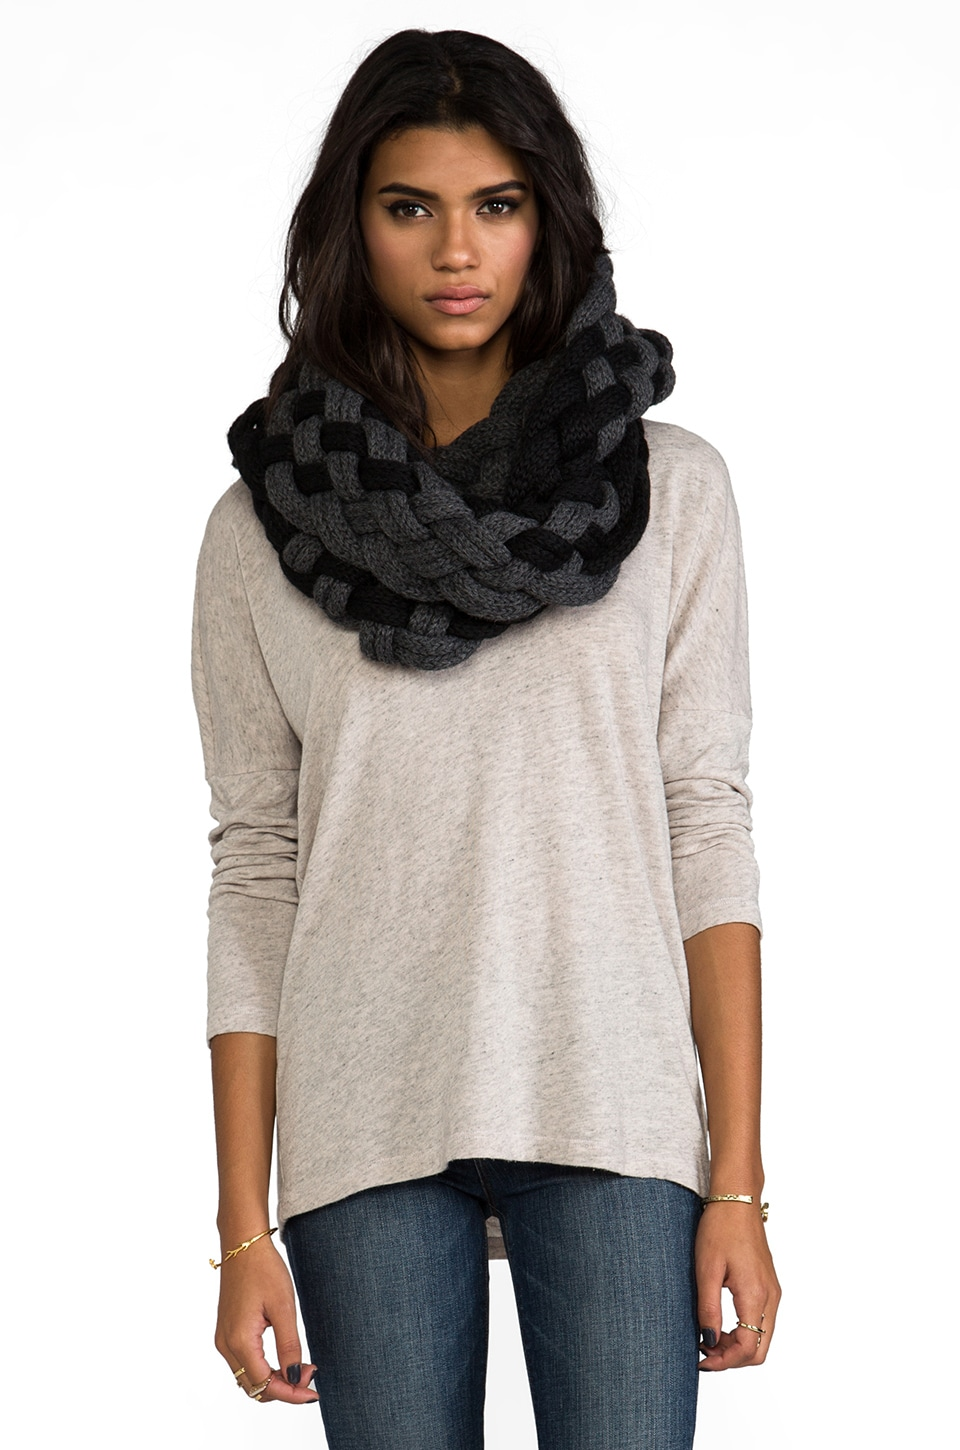 DE NADA Woven Infinity Scarf in Black/Charcoal